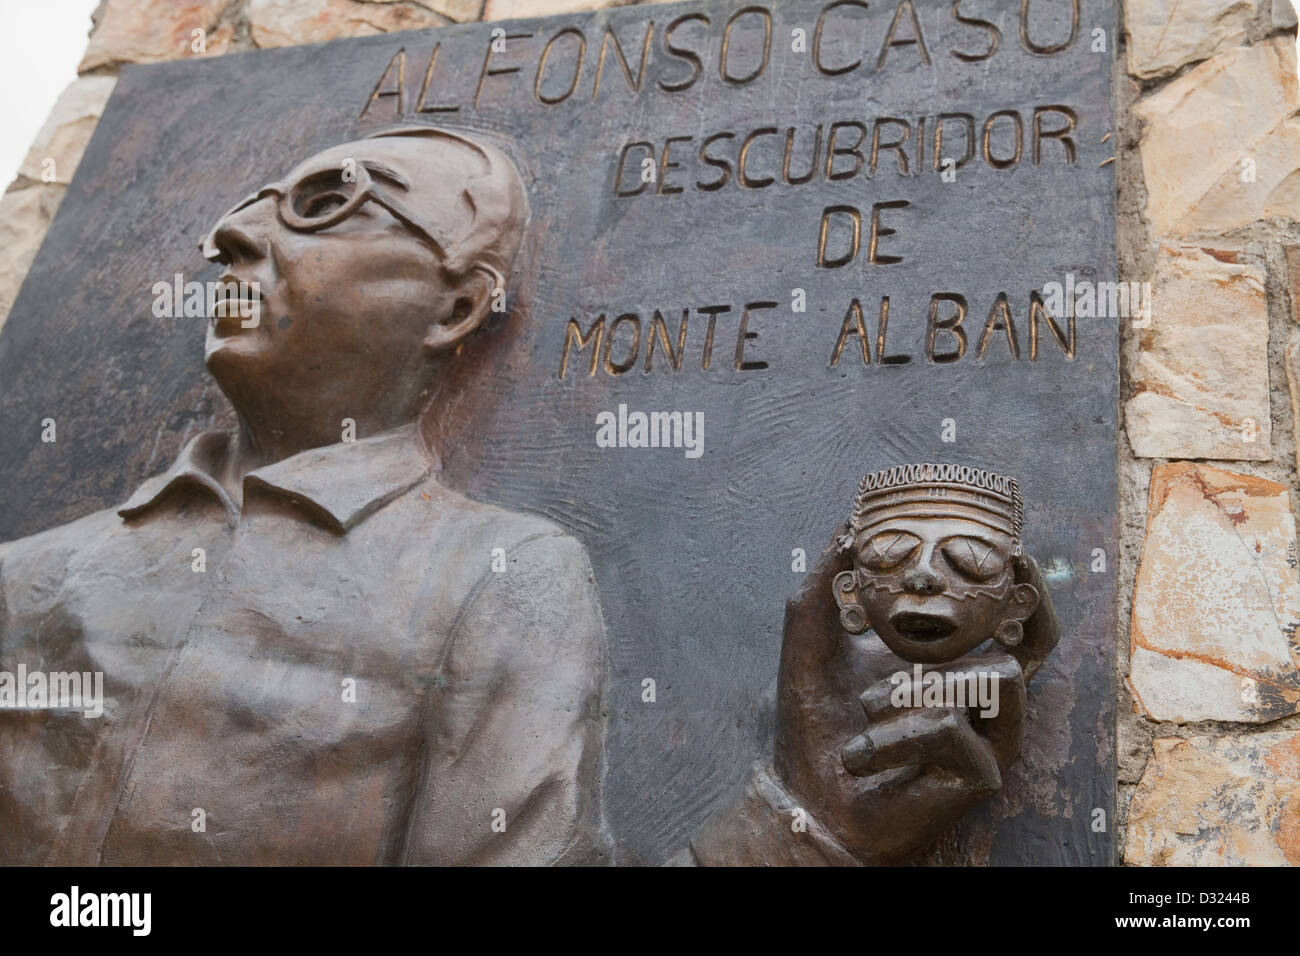 Monument showing archaeologist Alfonso Caso and gold mask, one of his most important discoveries at Monte Albán, Stock Photo